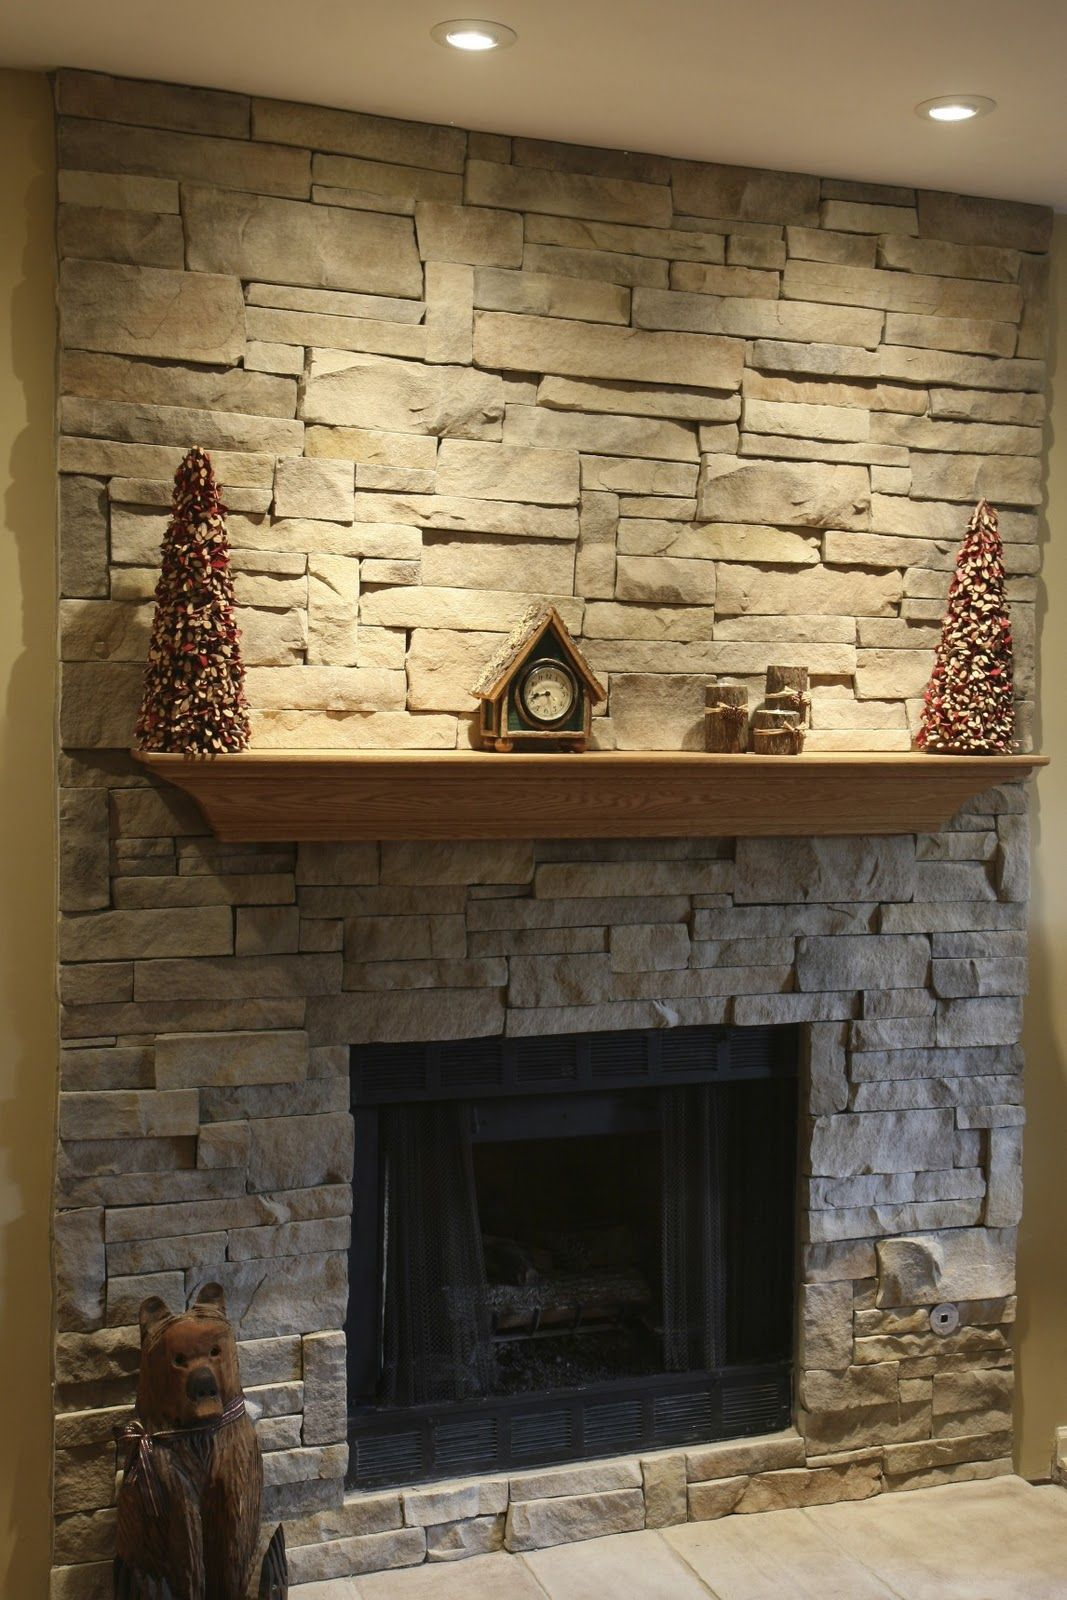 Ledge Stone Dry Stack Fireplace This Was A Brick Completely Refurbished With